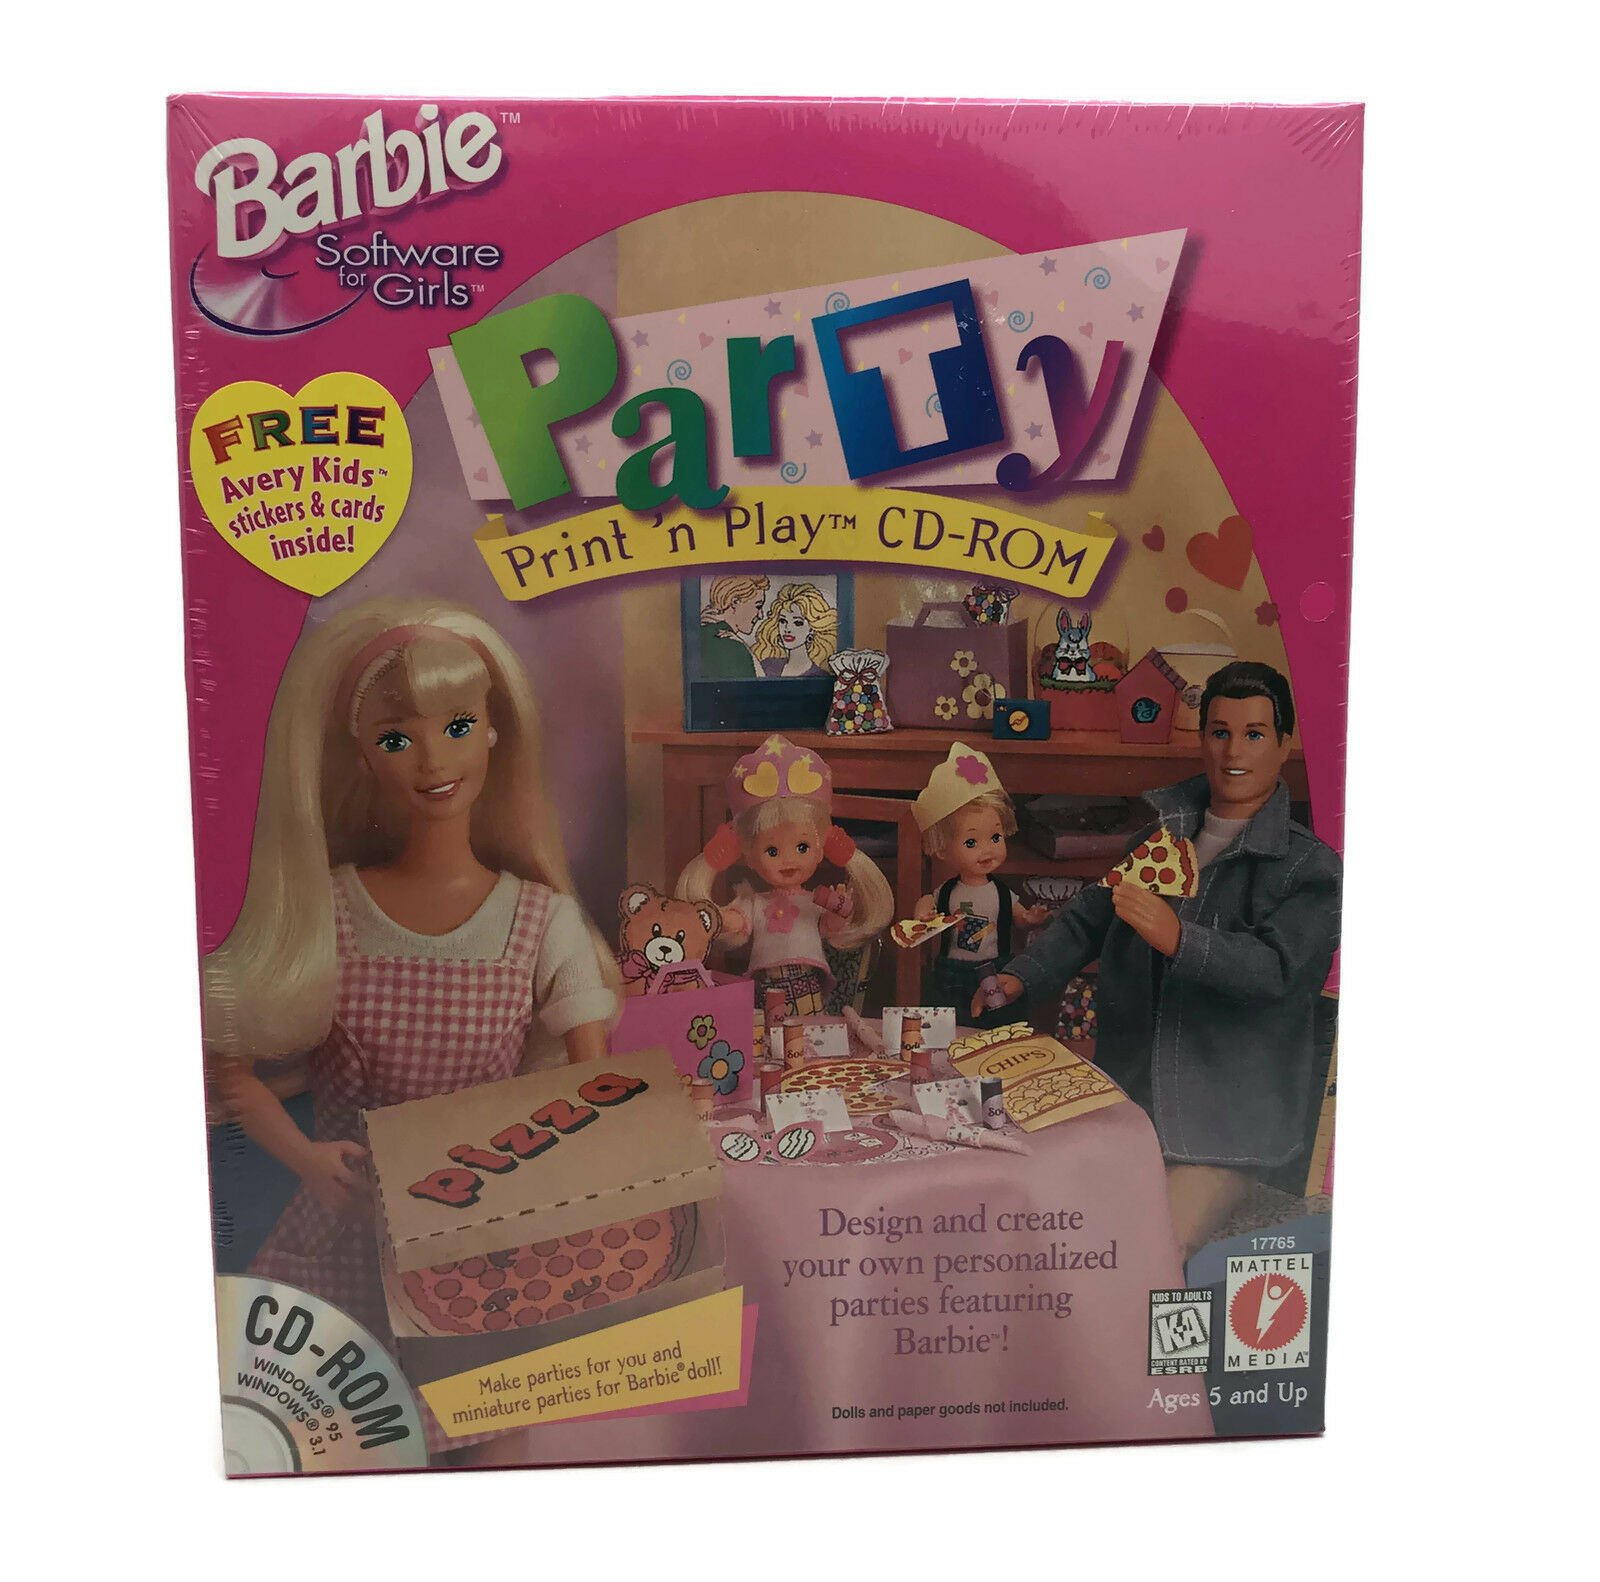 Vintage 1997 Barbie Party Print 'n Play CD-ROM PC Game Mattel For Windows 95/98 - $14.03